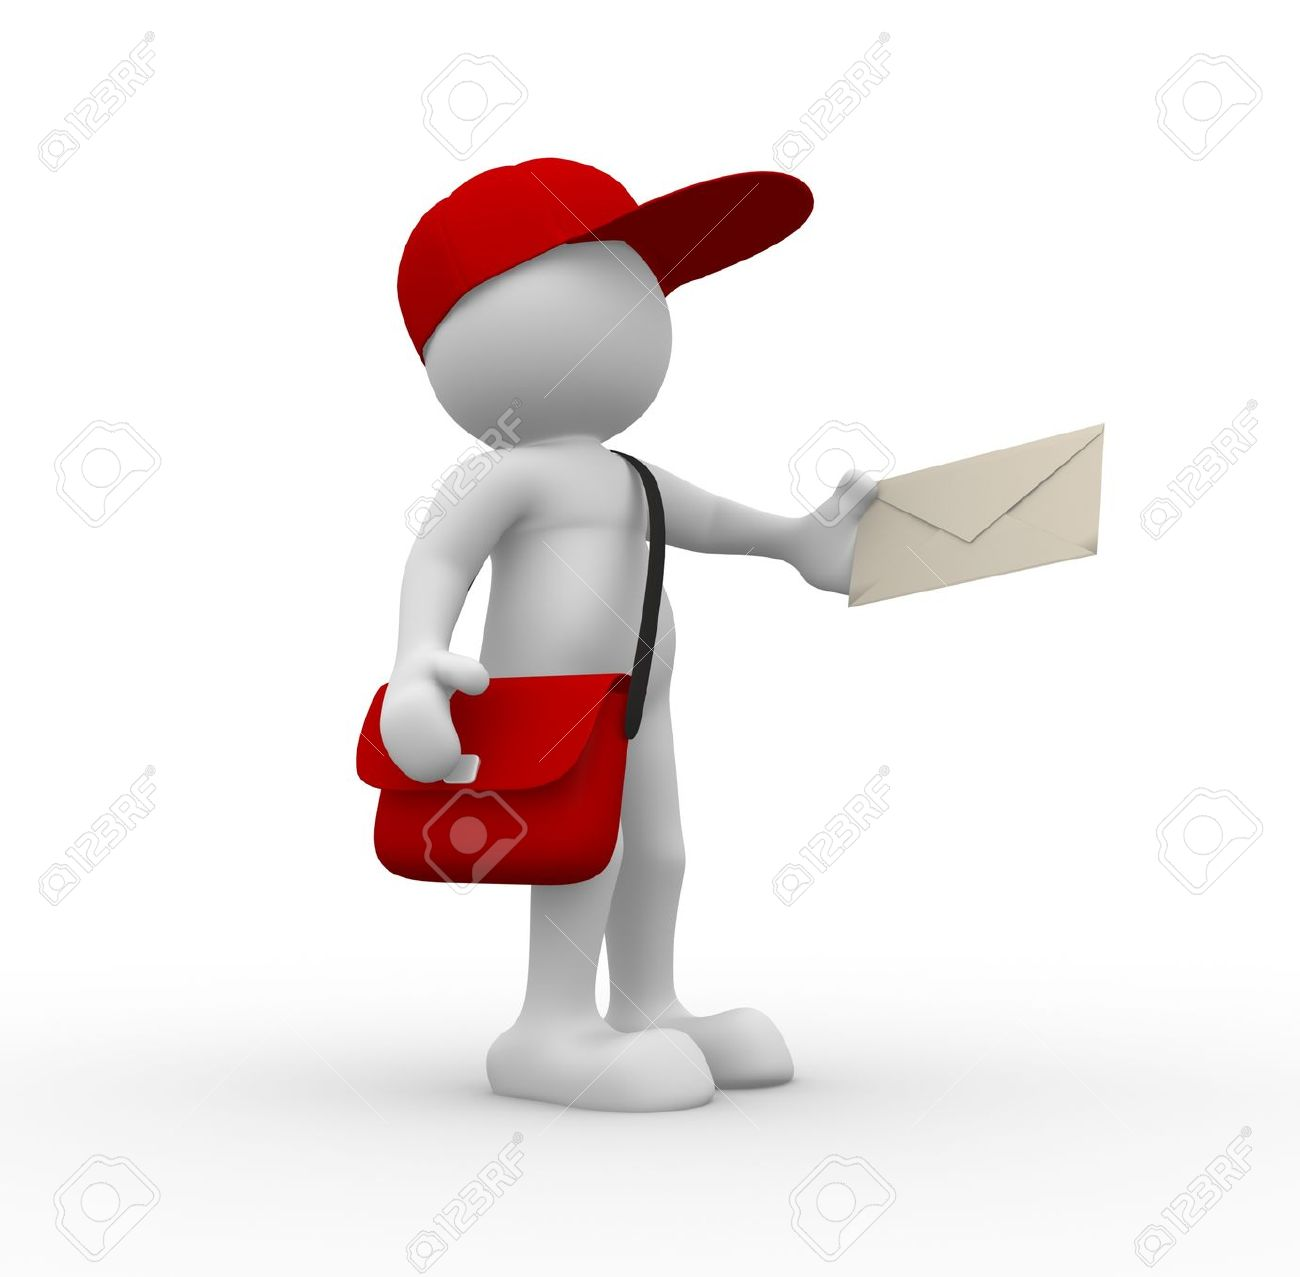 3d people - human character, person with cap. Postman with envelope and bag. 3d render Standard-Bild - 14800007